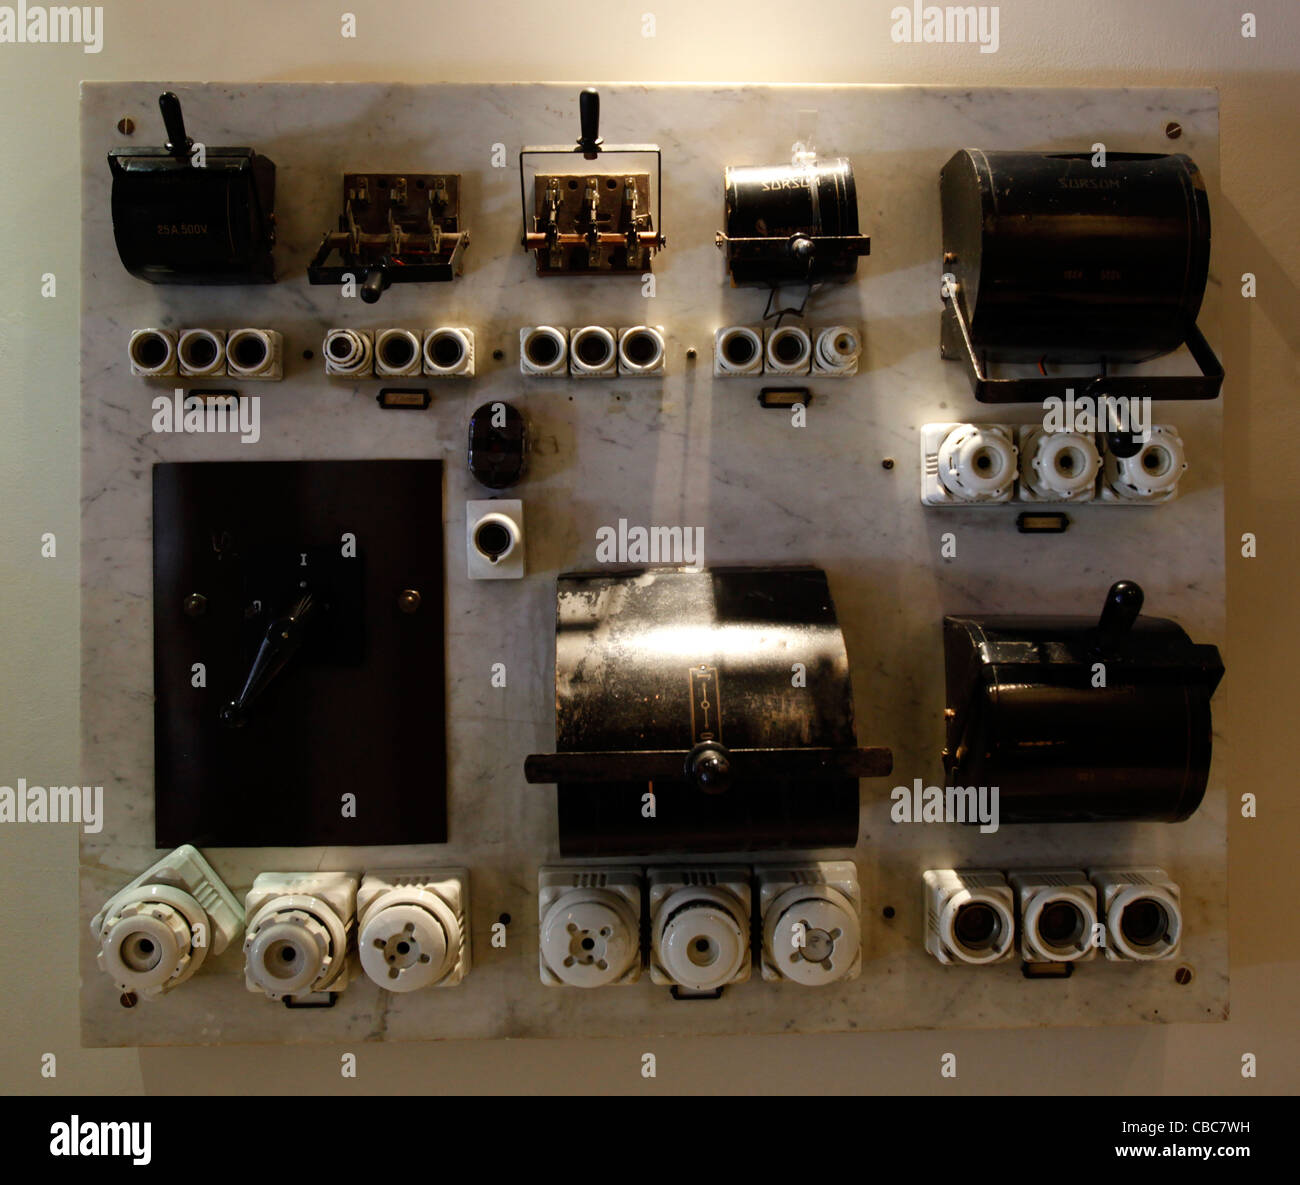 an old electric fuse box switchboard with ceramic fuses